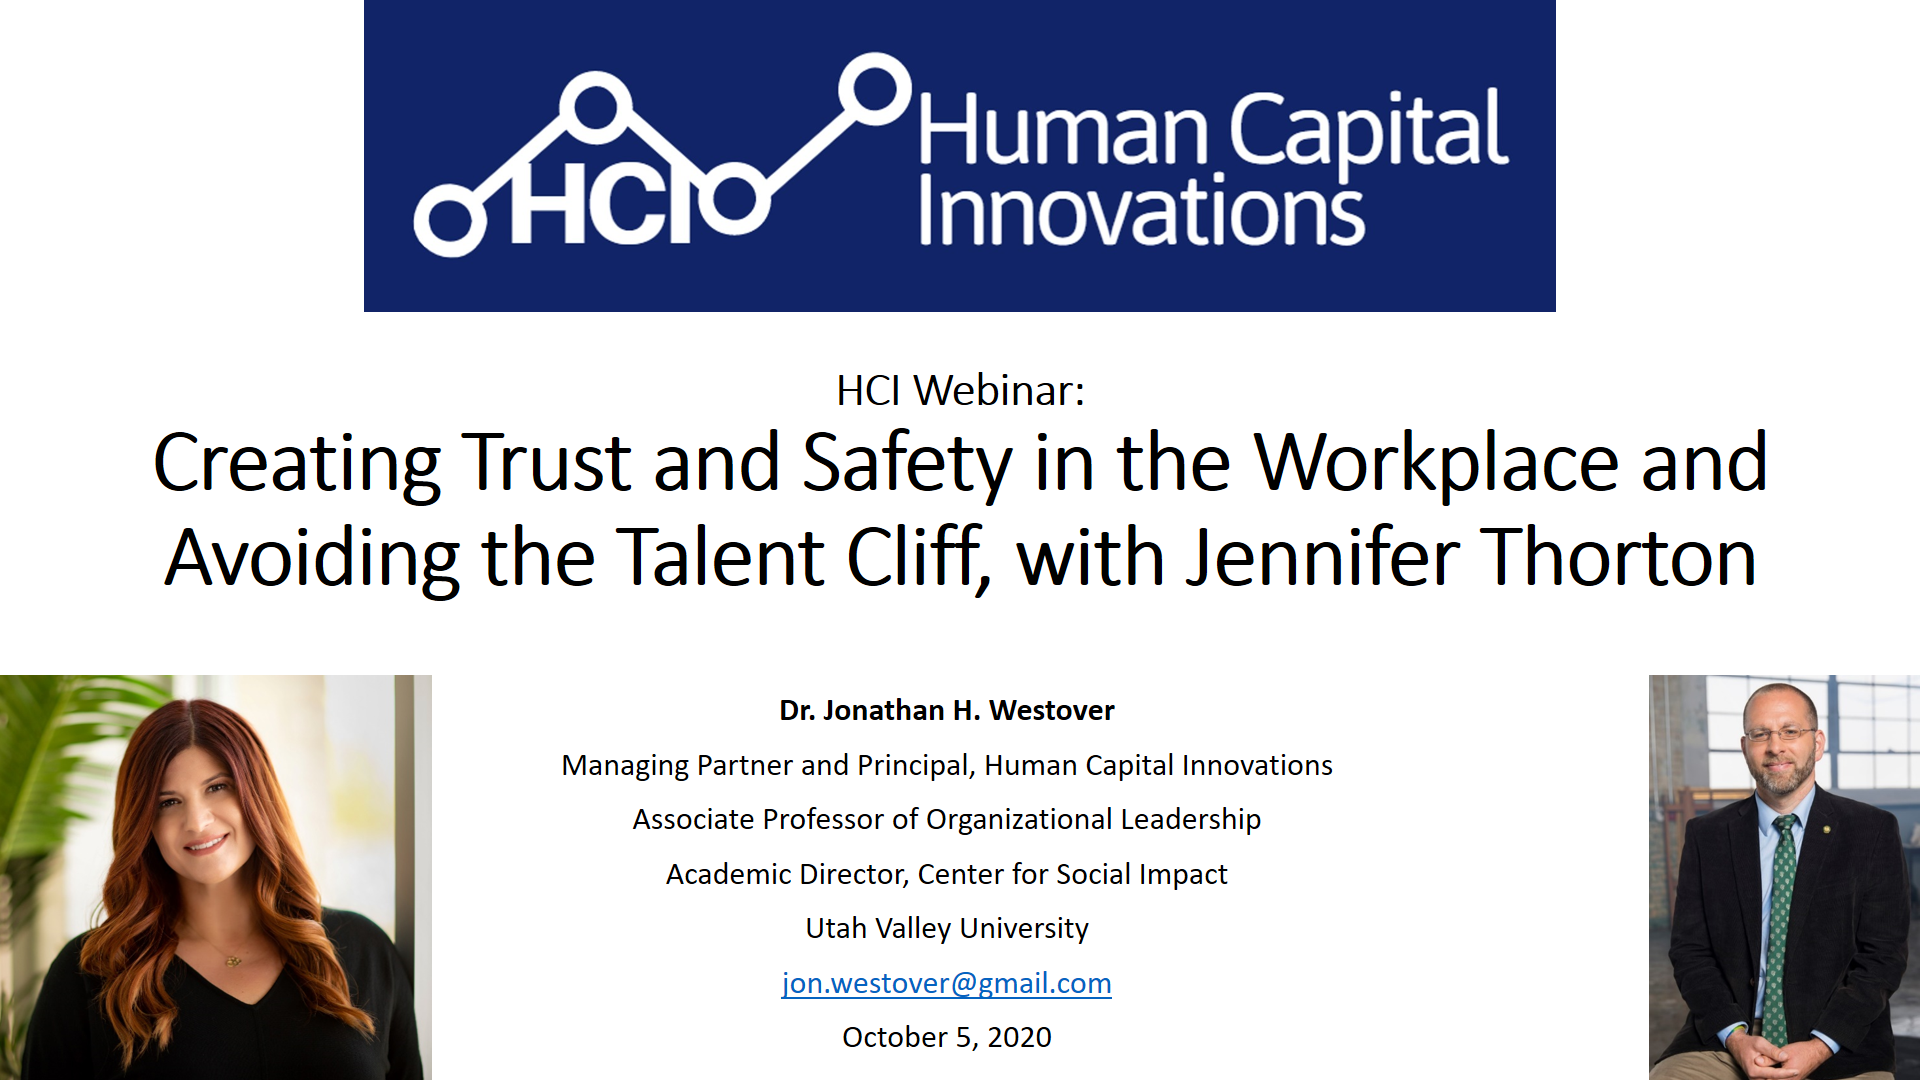 Creating Trust & Safety in the Workplace & Avoiding the Talent Cliff